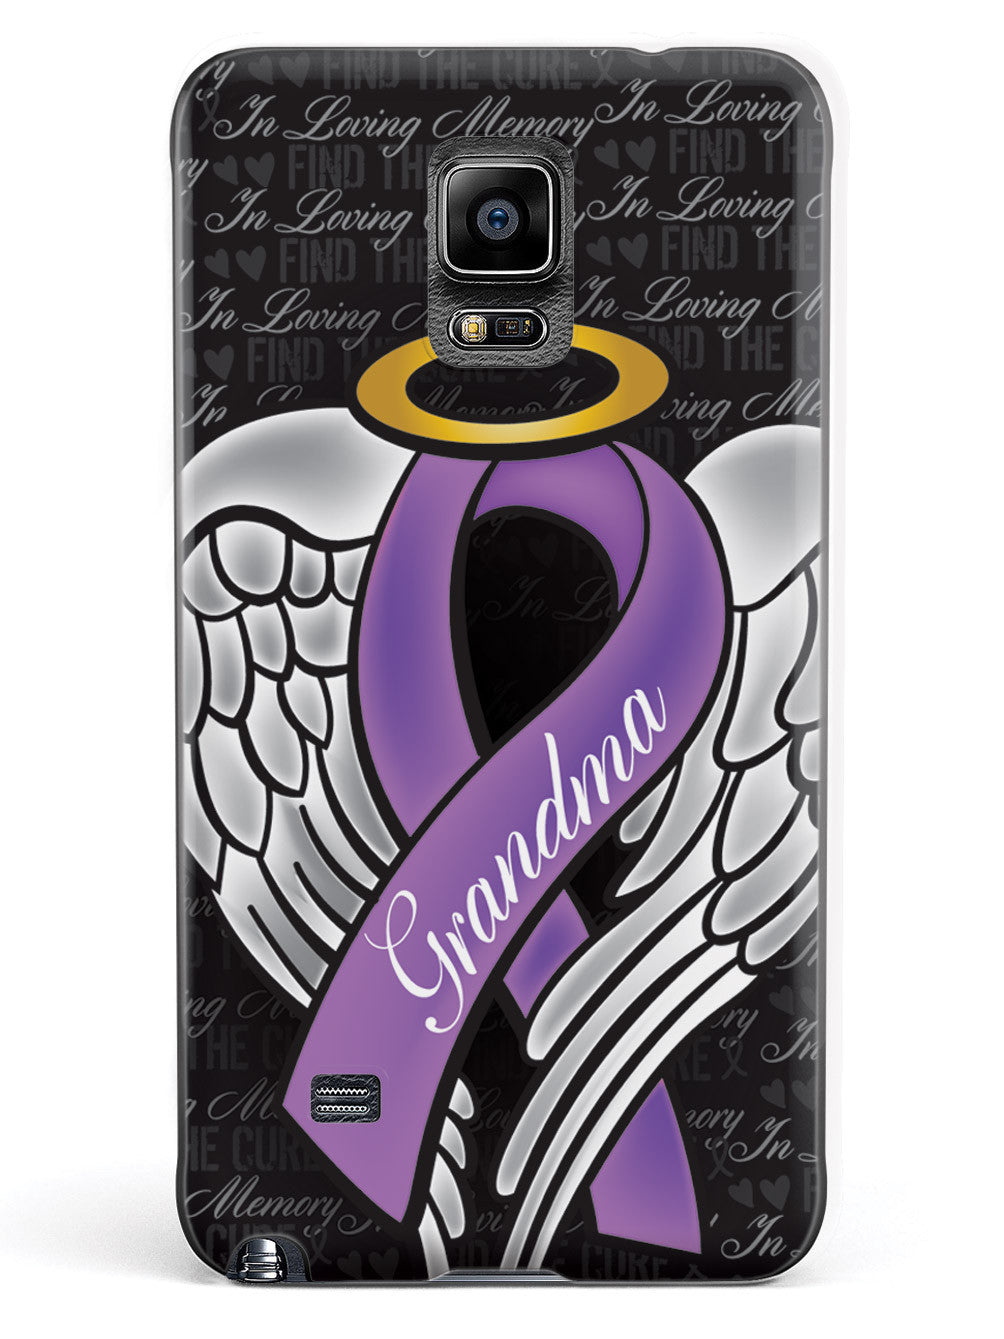 In Loving Memory of My Grandma - Purple Ribbon Case